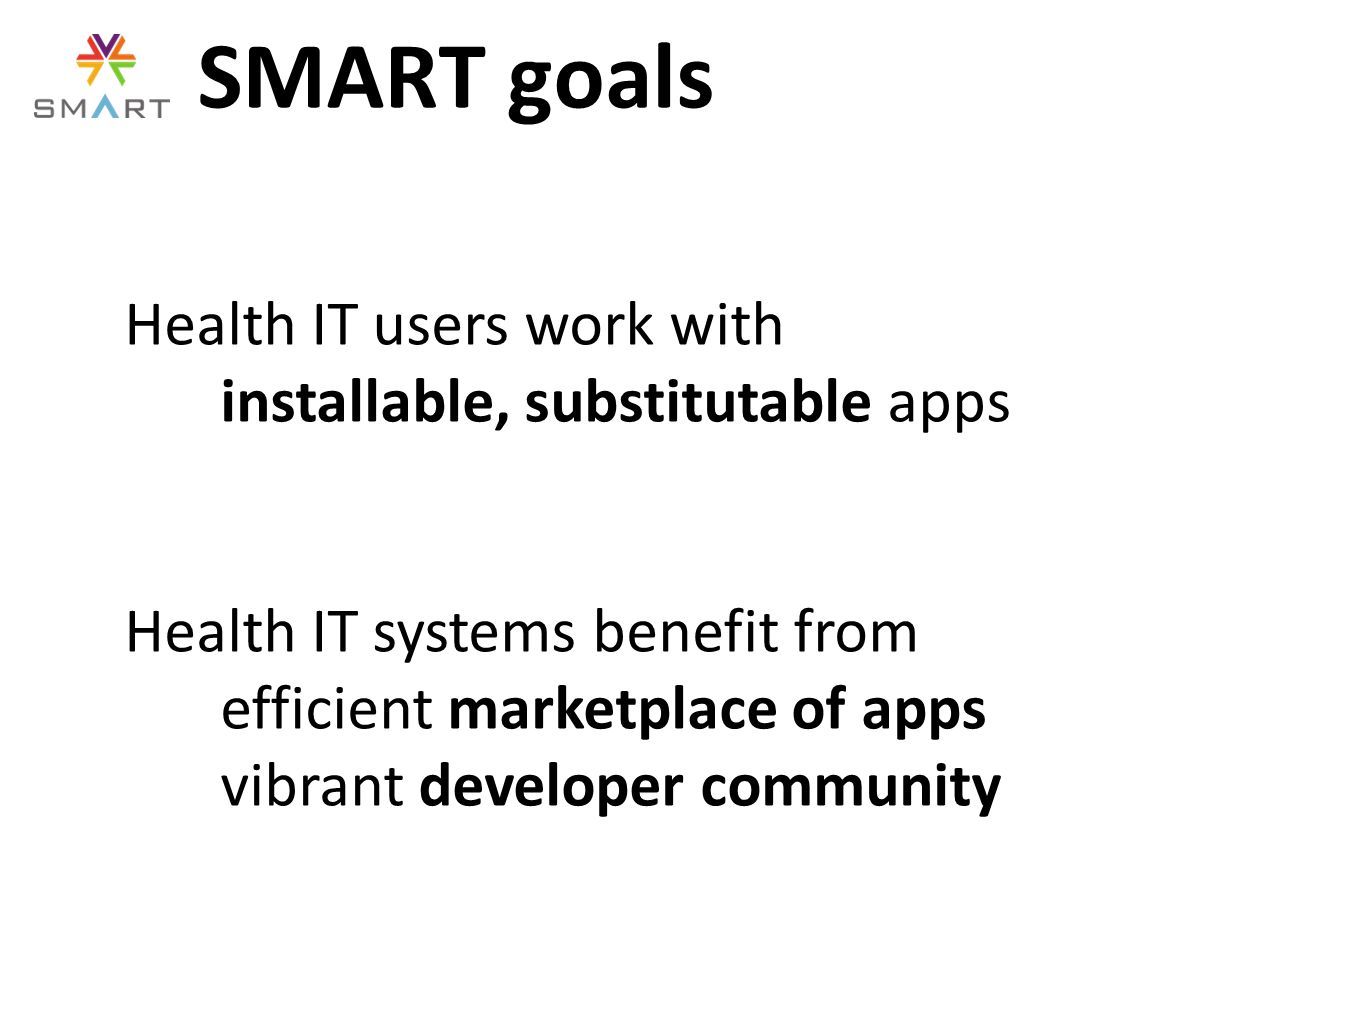 SMART goals Health IT users work with installable, substitutable apps Health IT systems benefit from efficient marketplace of apps vibrant developer community